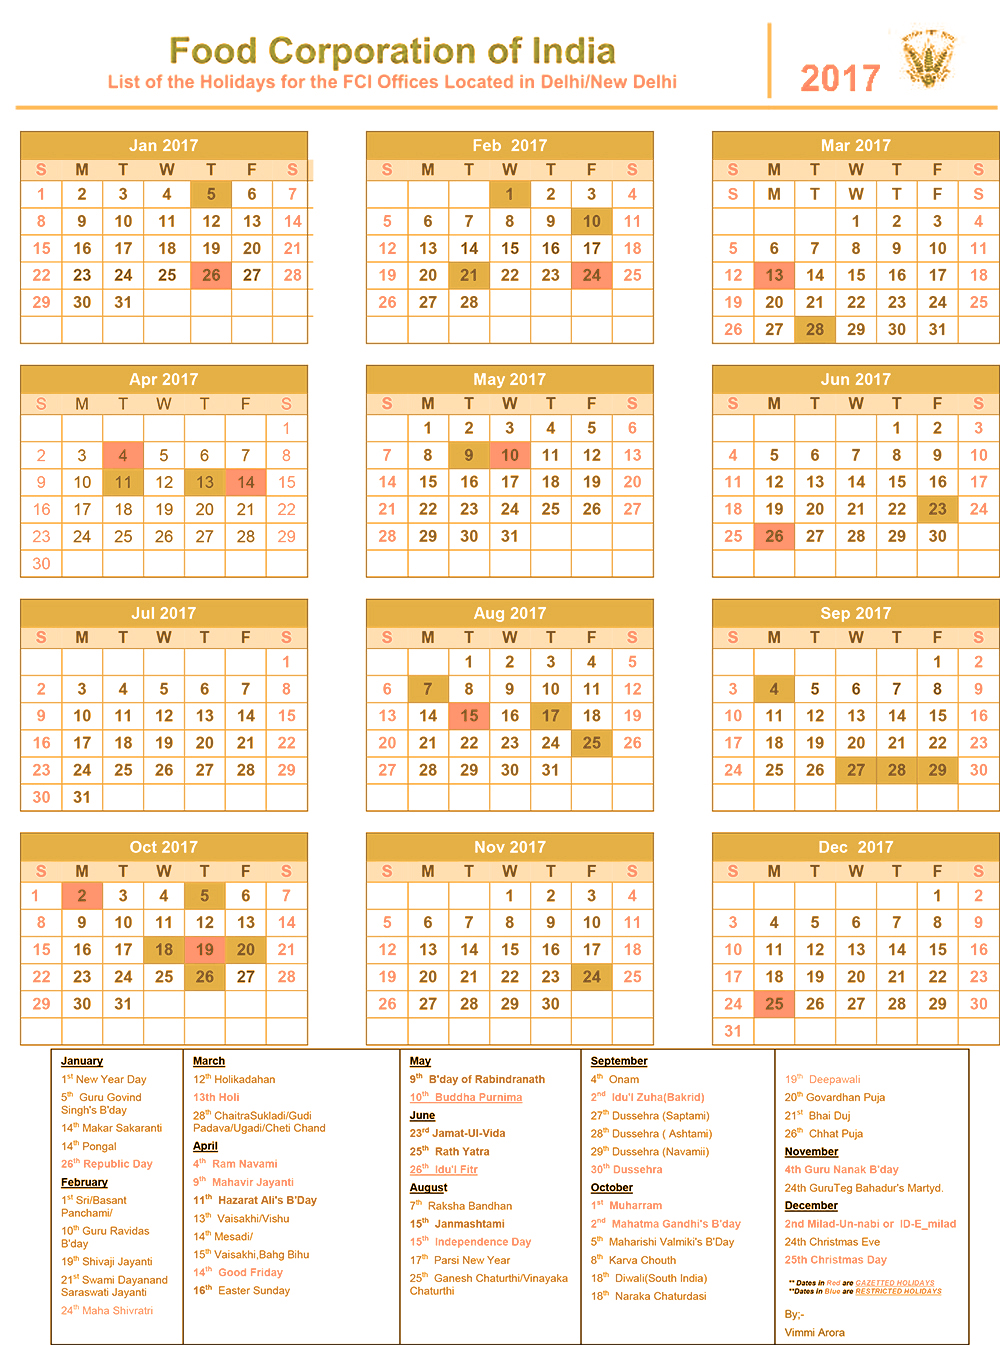 Corporate Calendar 2017 : Fci holidays calendar food corporate of india leaves